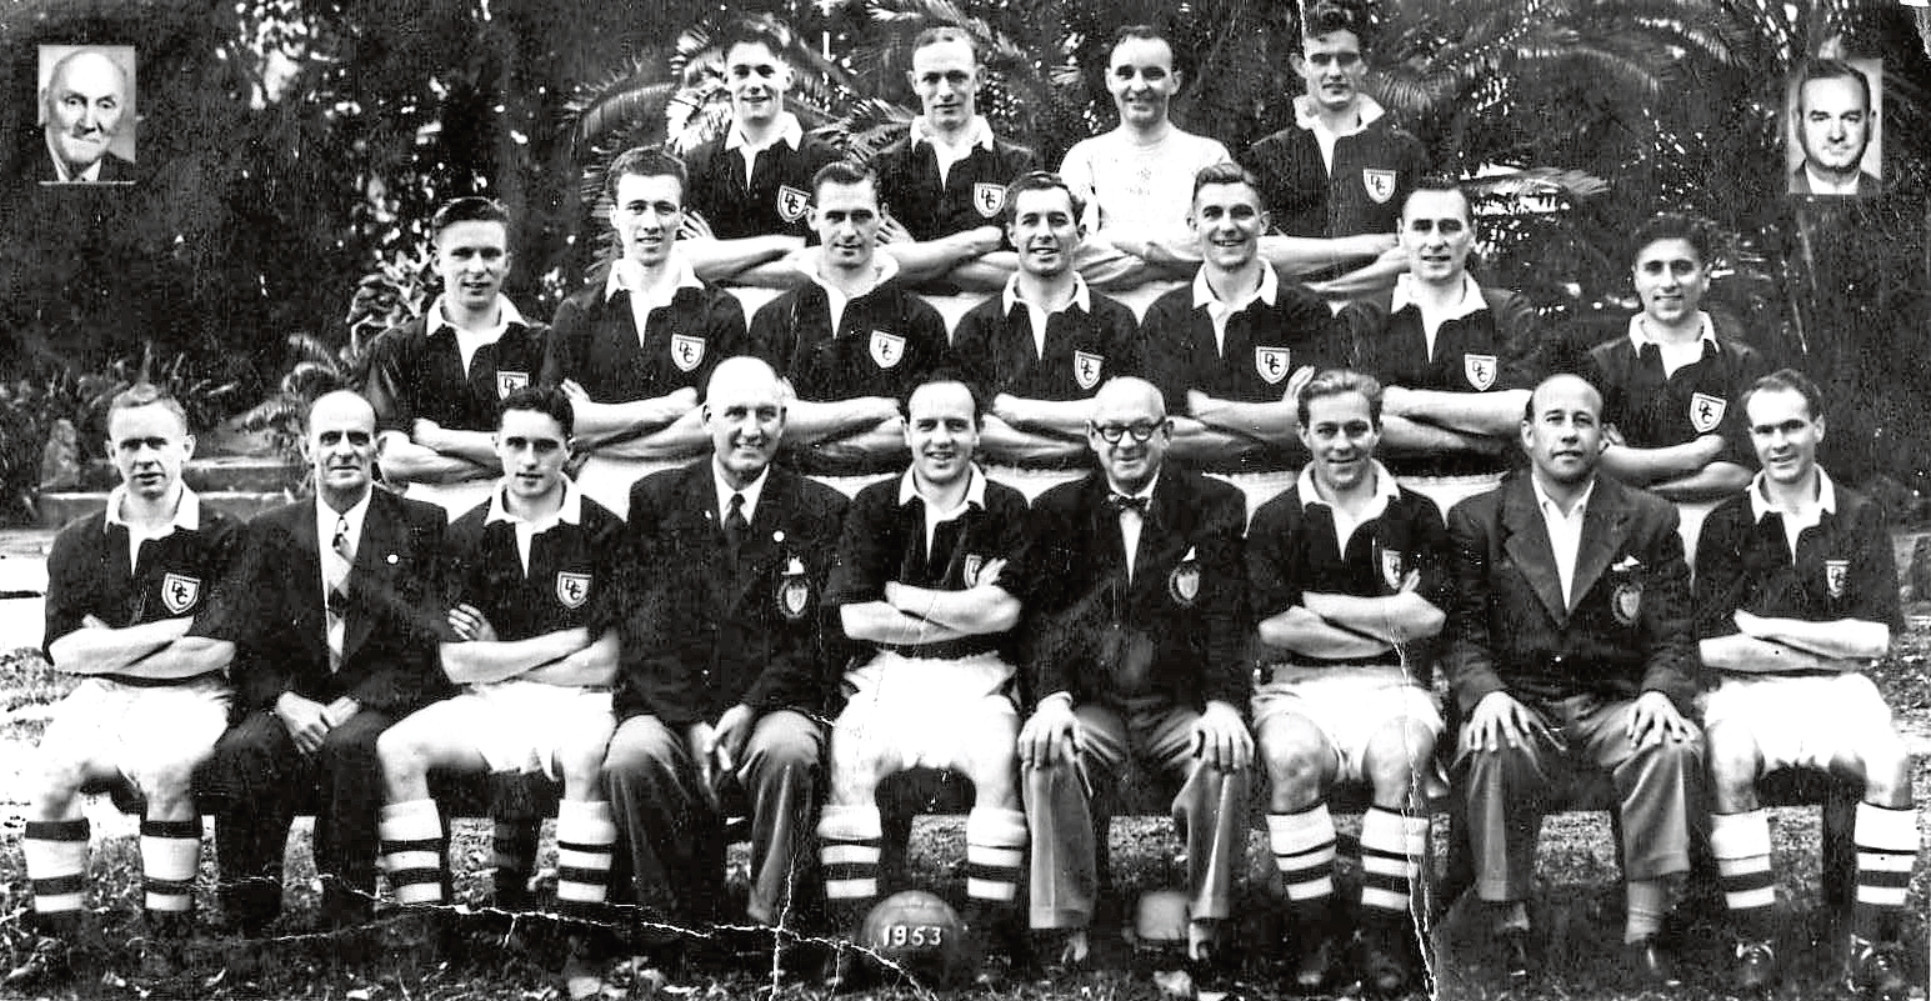 Dundee headed to South Africa in 1953 under management of George Anderson (bottom row with glasses). Photo courtesy of Kenny Ross.